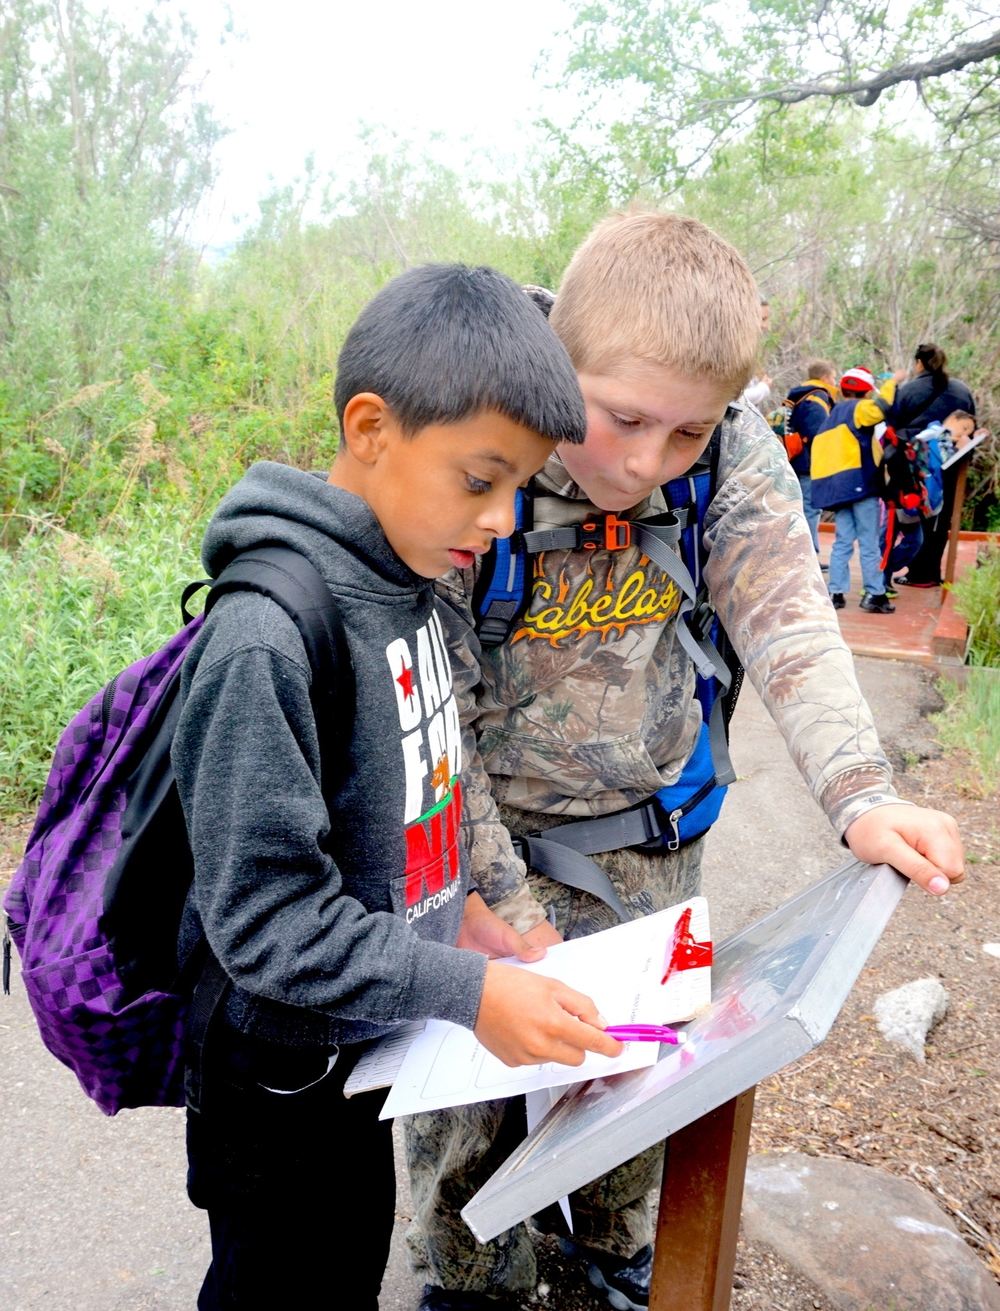 5th graders explore a local nature area learning about watershed science.